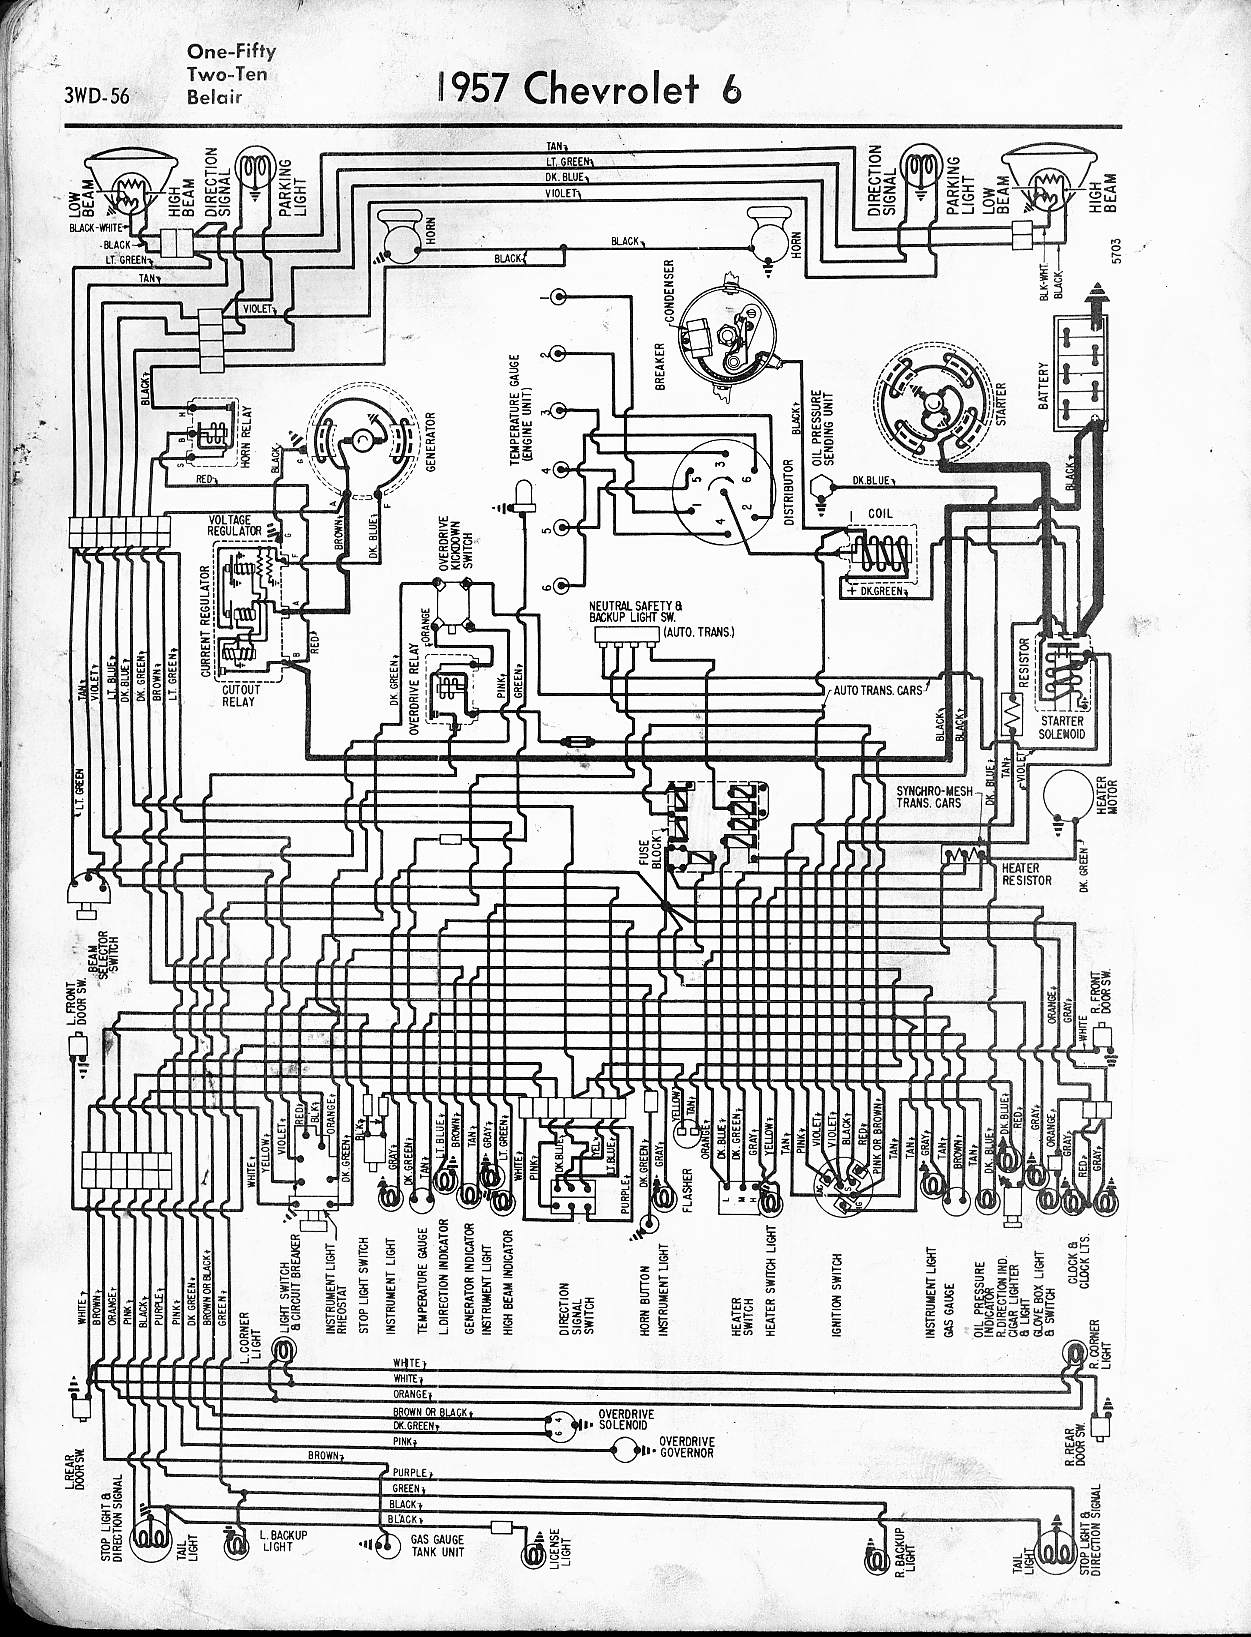 MWireChev57_3WD 056 57 65 chevy wiring diagrams 57 chevy truck wiring harness at aneh.co